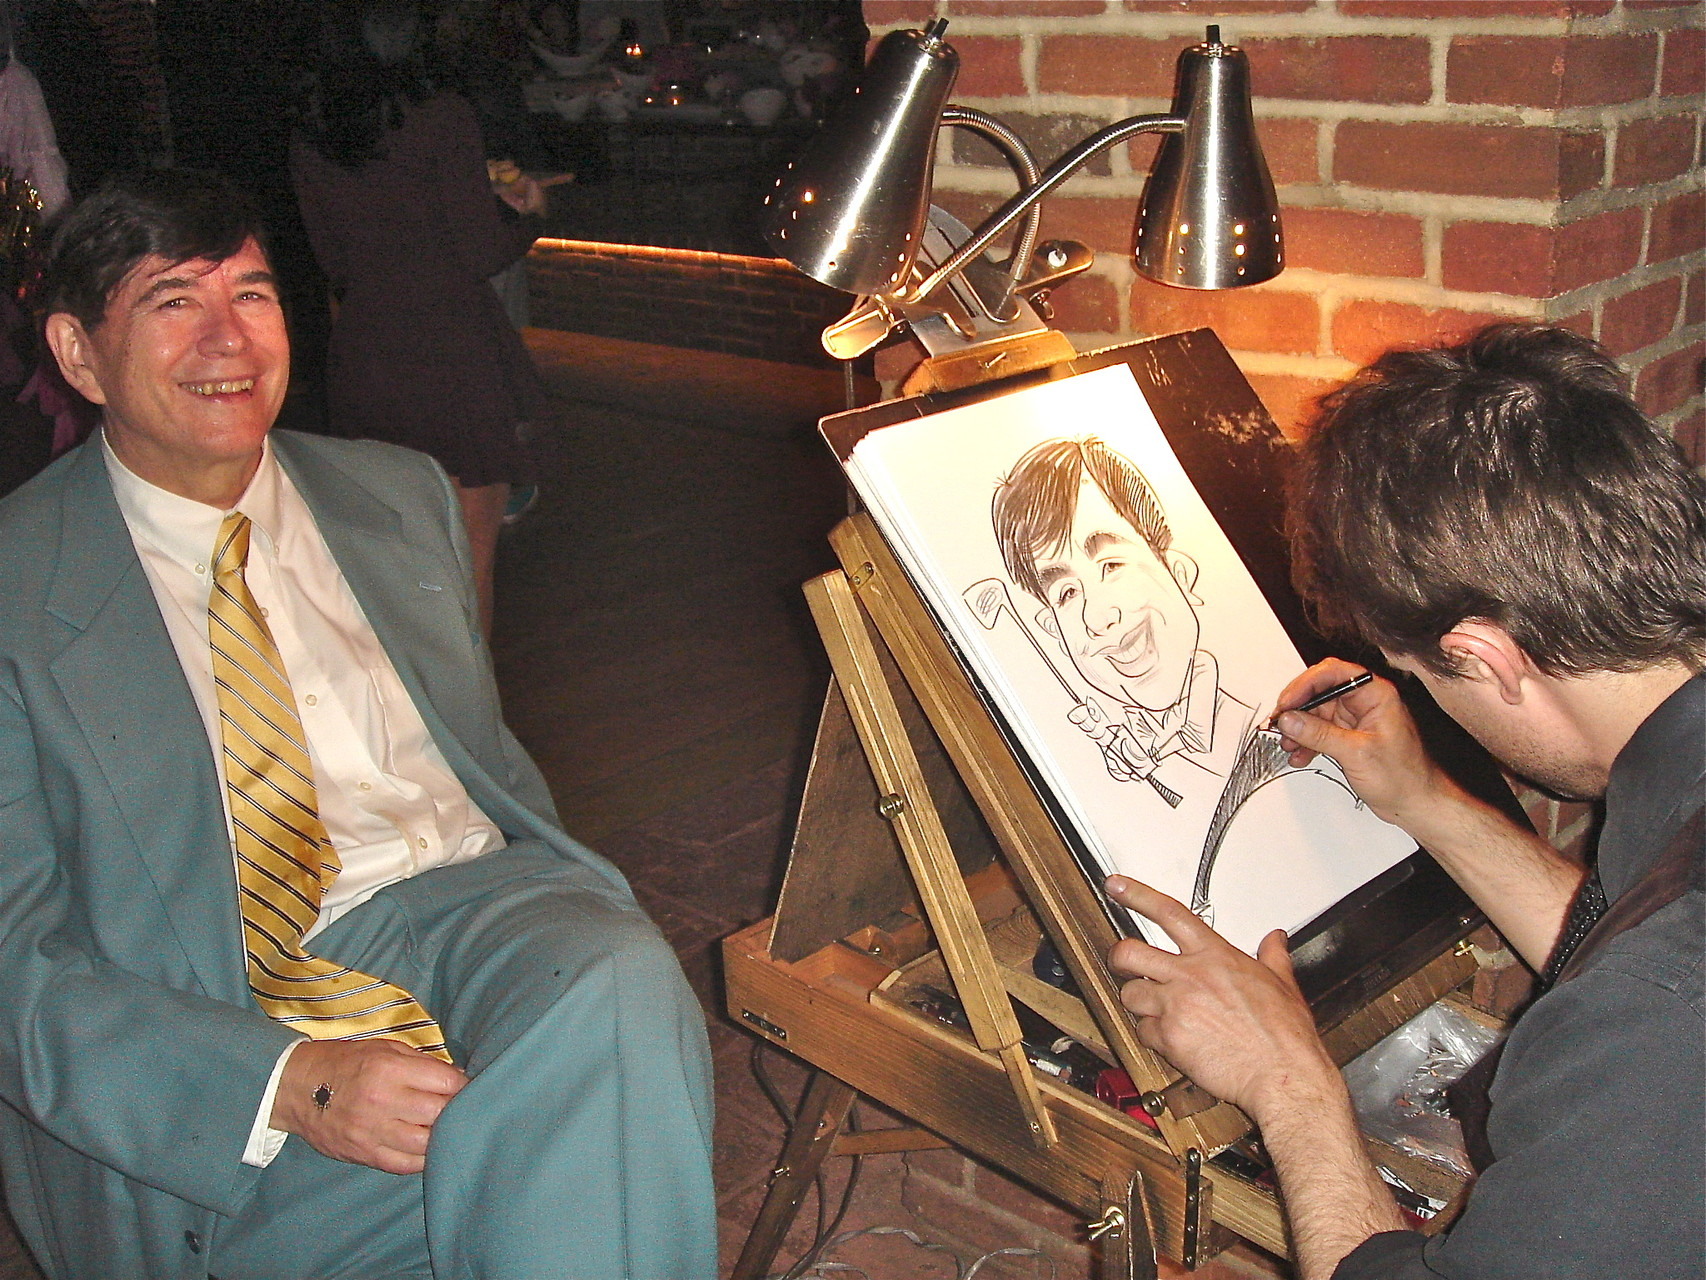 John gets a characature drawn